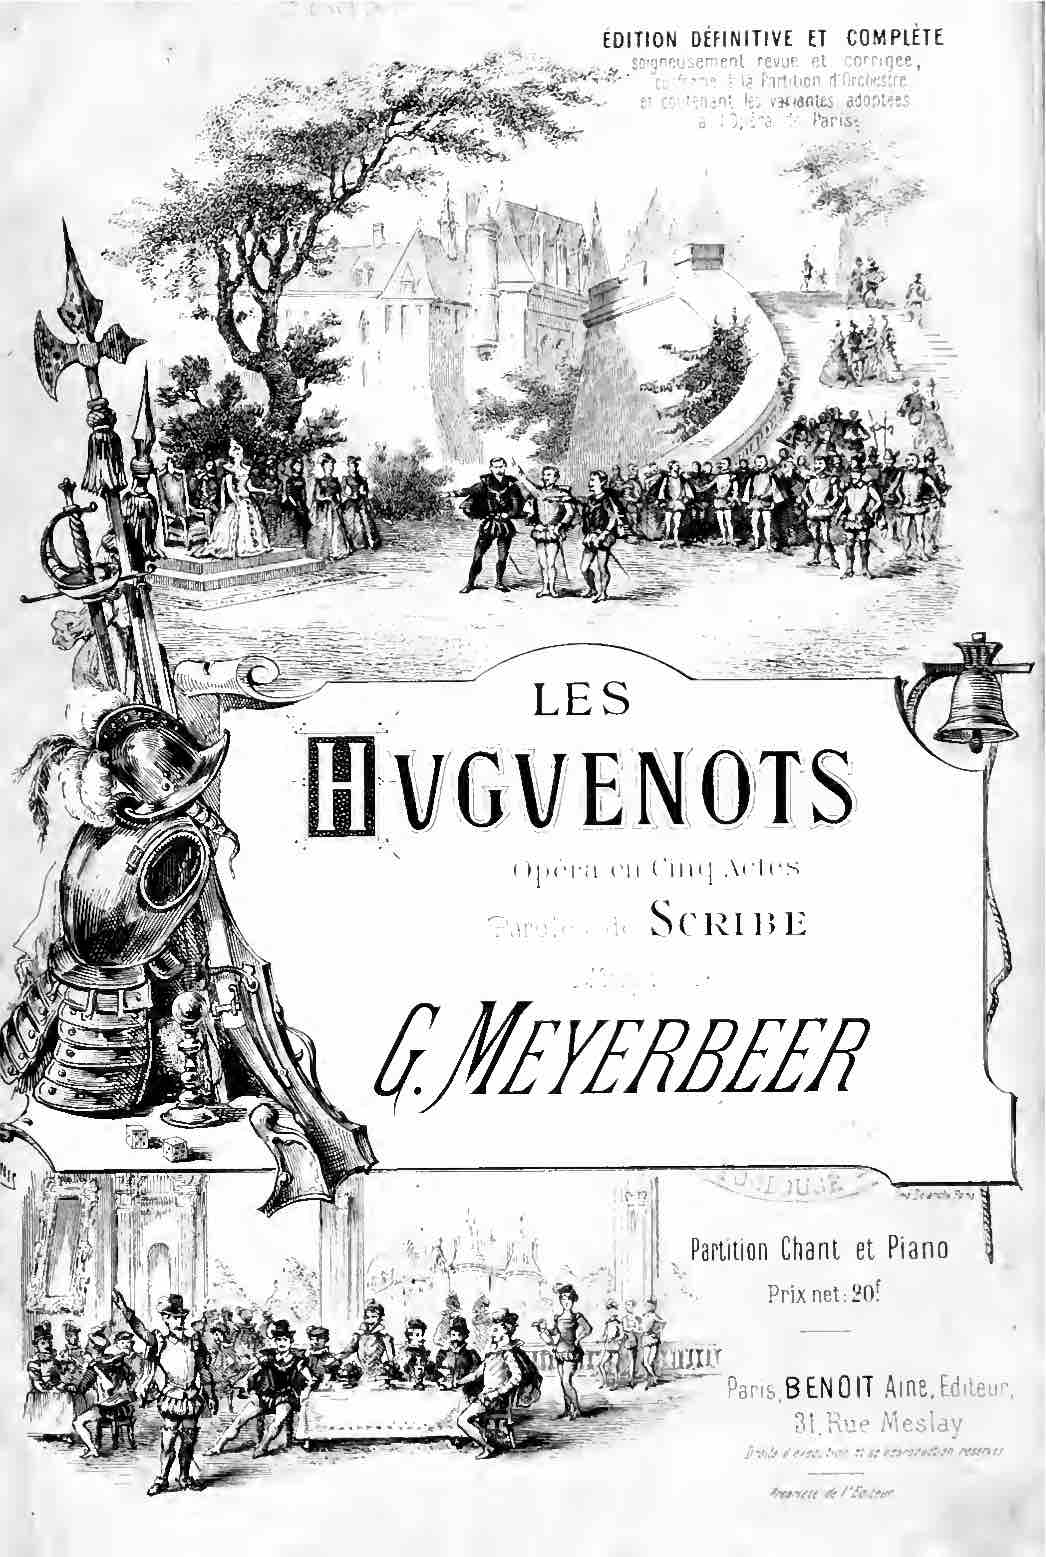 Les_Huguenots_-_vocal_score_cover_-_Macquet_reprint_(after_1888)_IMSLP72250.jpg